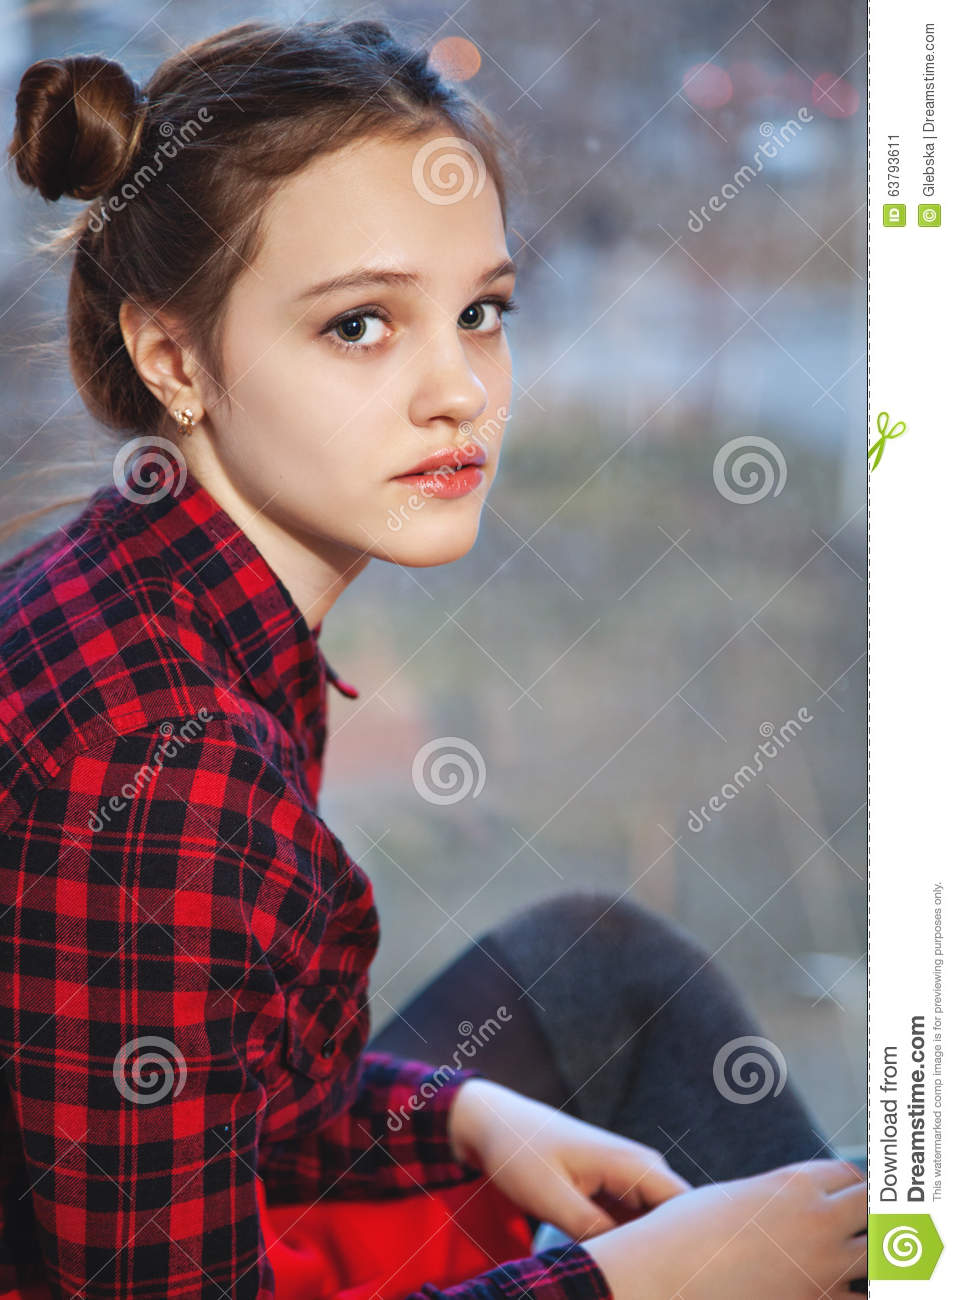 Girl With The Blog: Sweet Teen Girl With Tuft Of Hair Stock Image